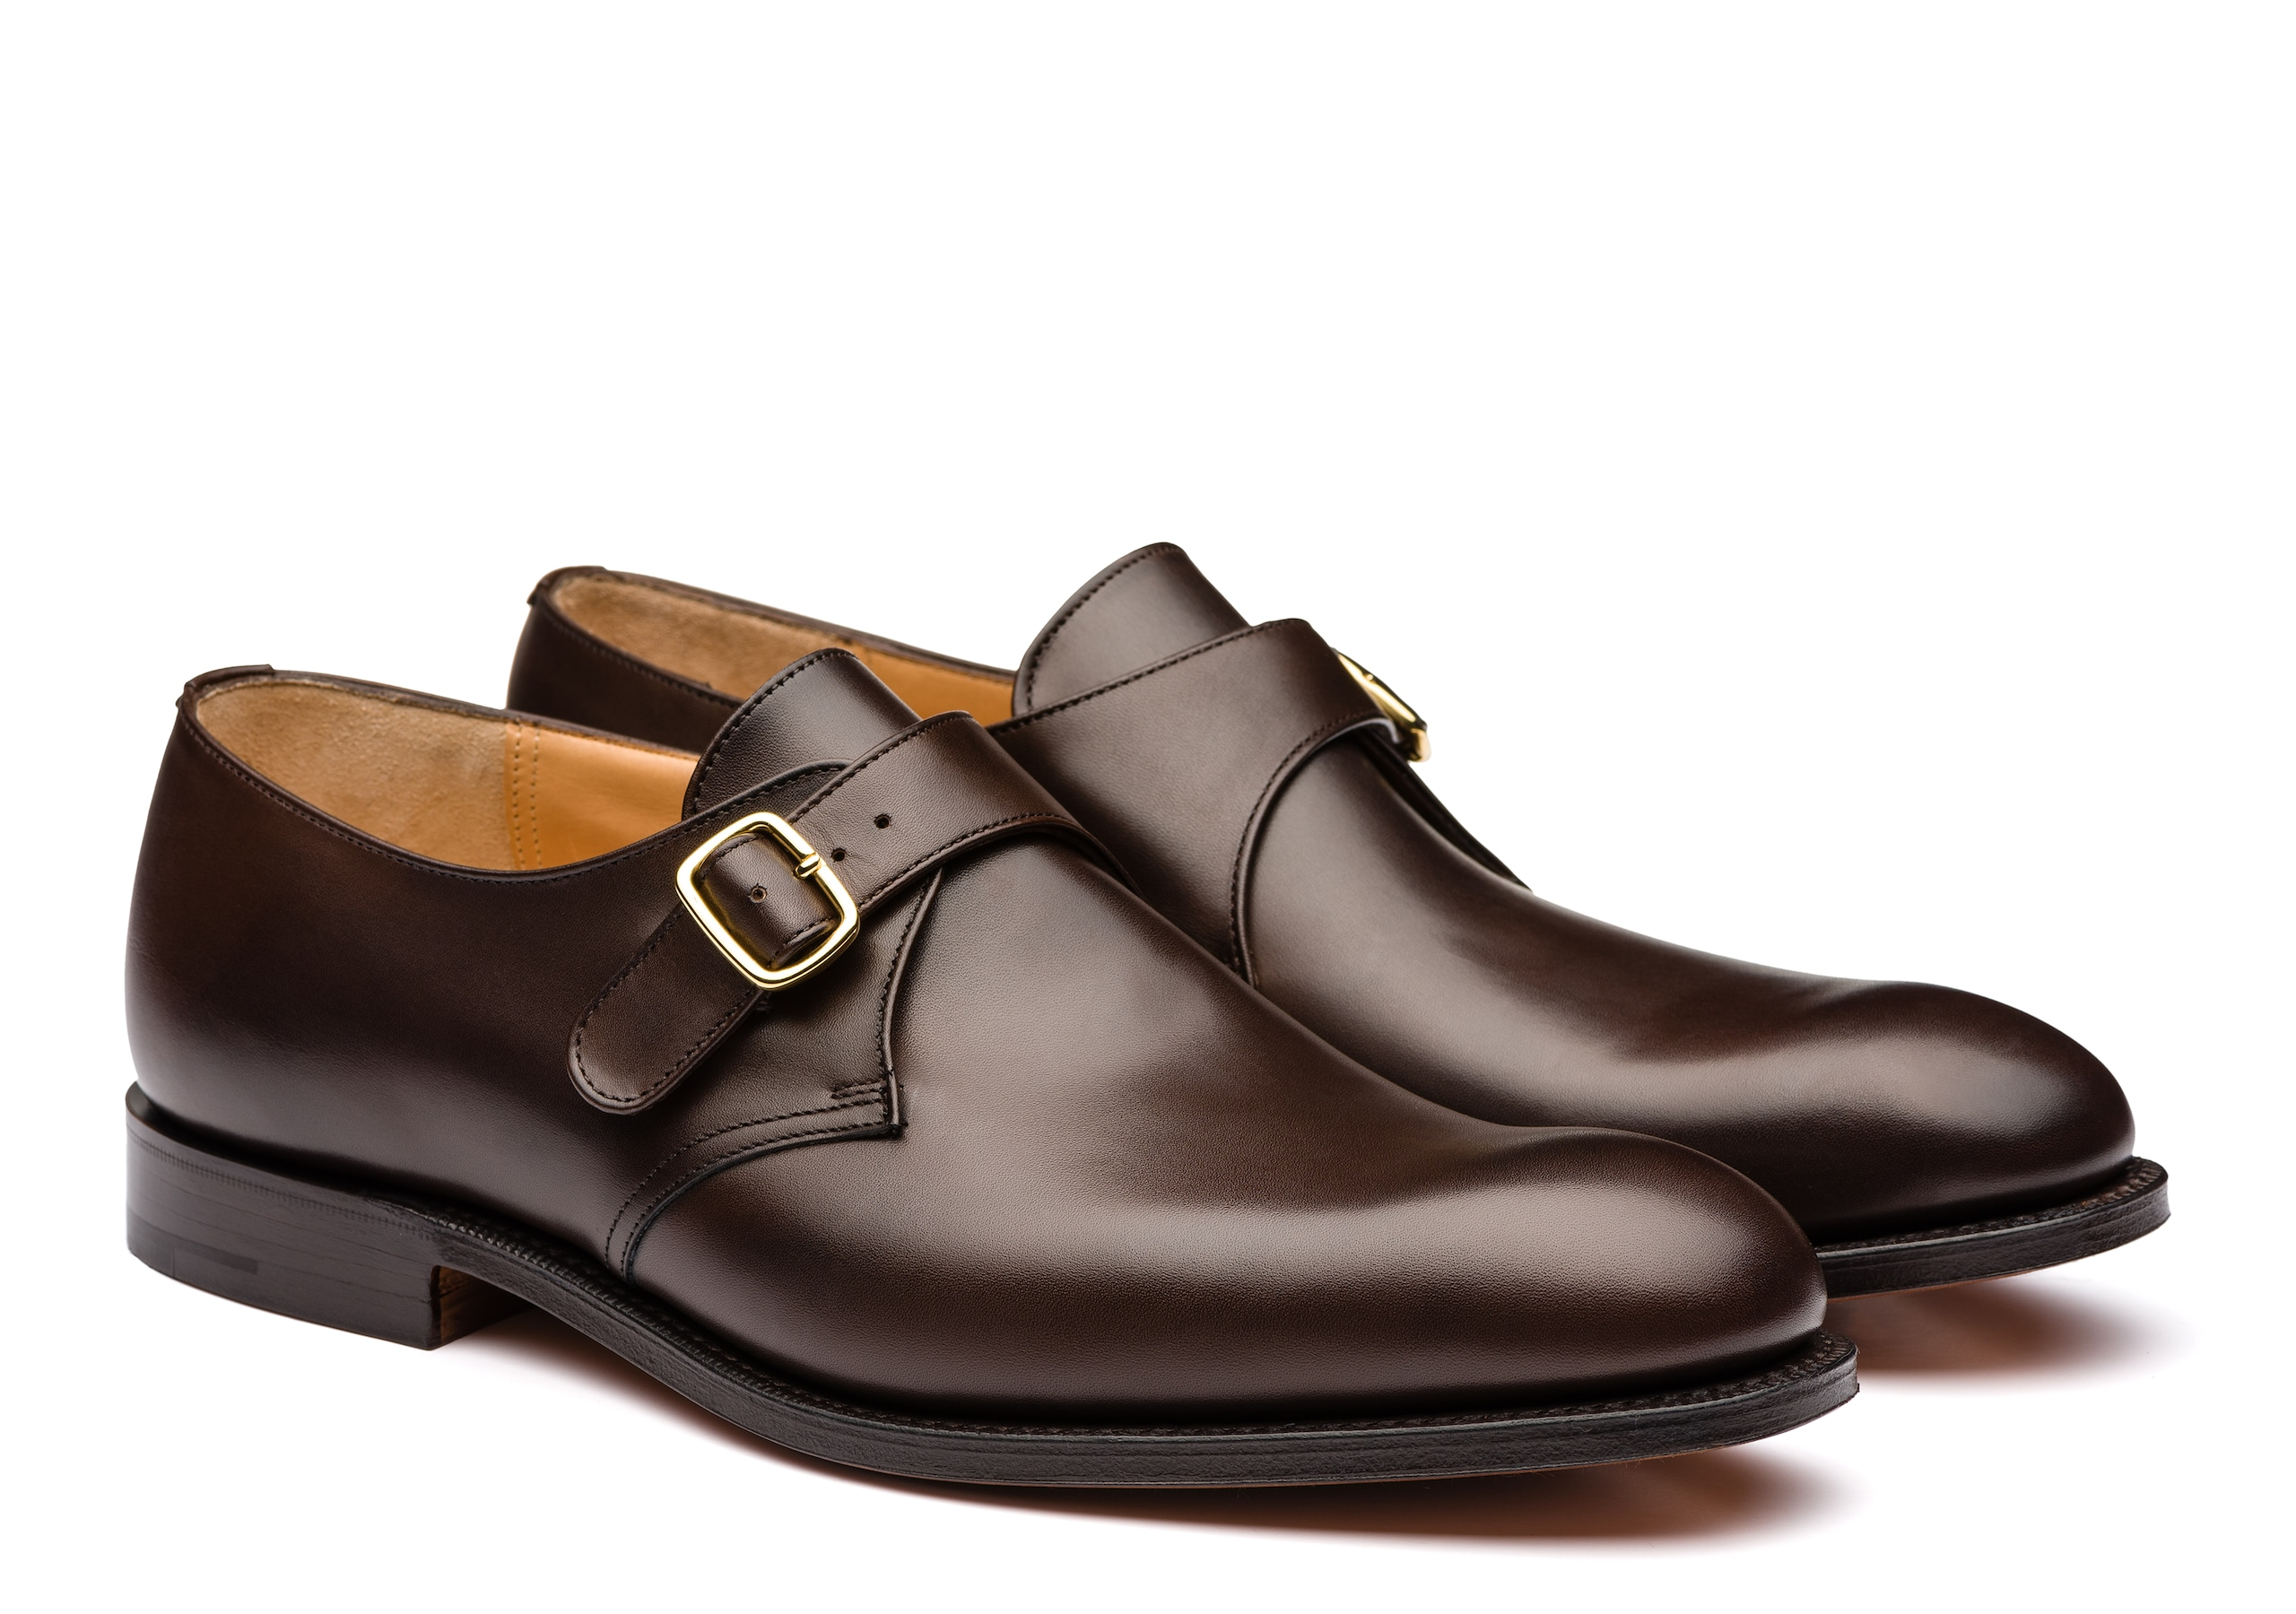 Becket Church's Nevada Leather Monk Strap Brown